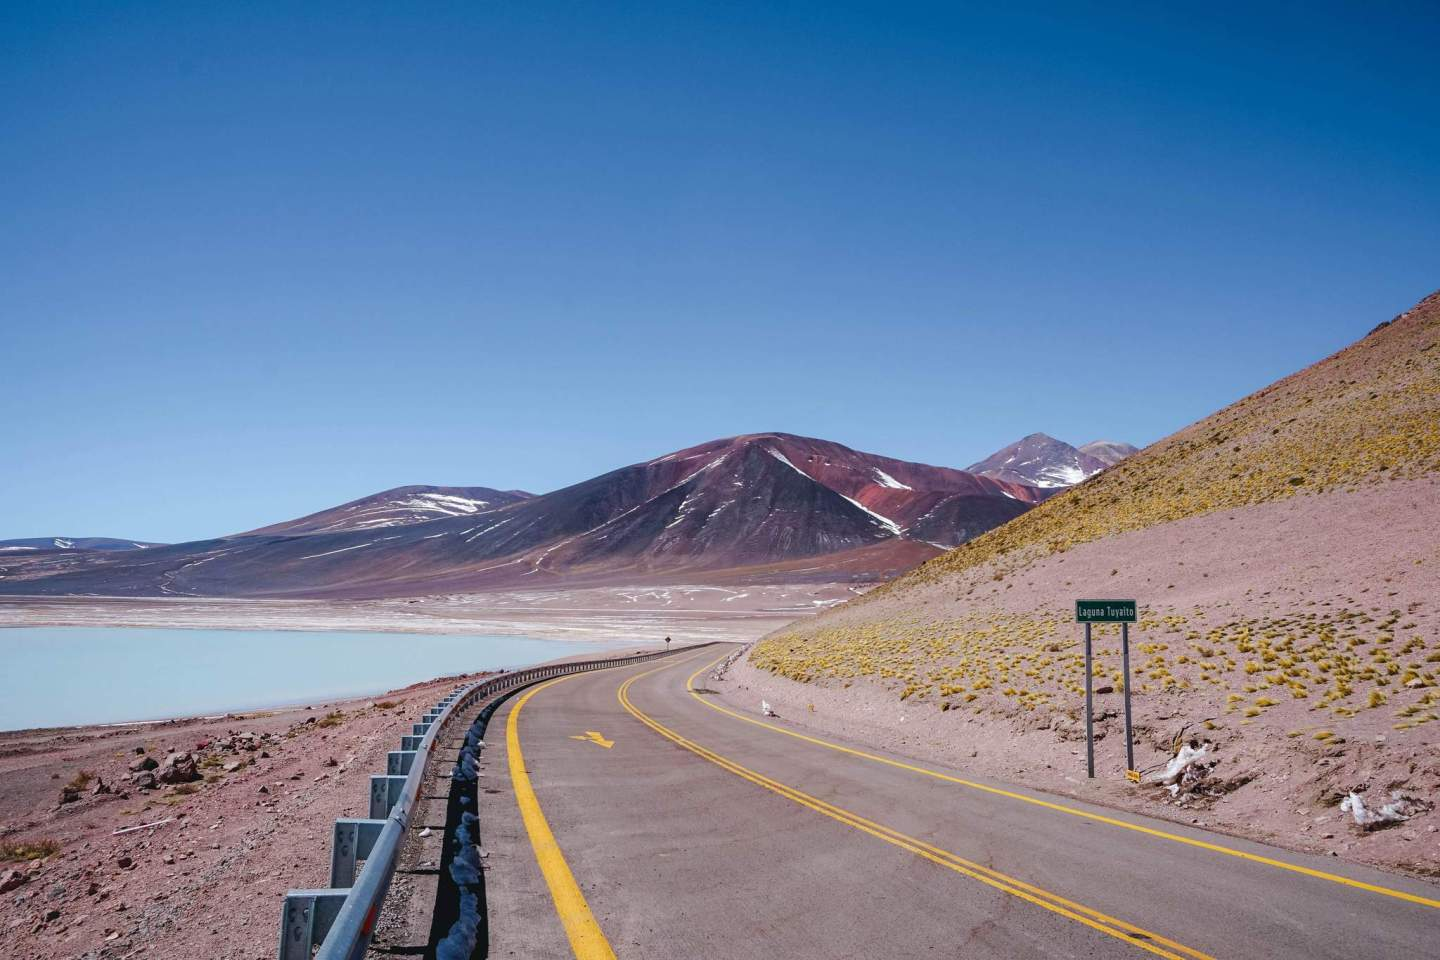 Self-driving guide-to-Atacama-Desert-itinerary-must-see-spots-12